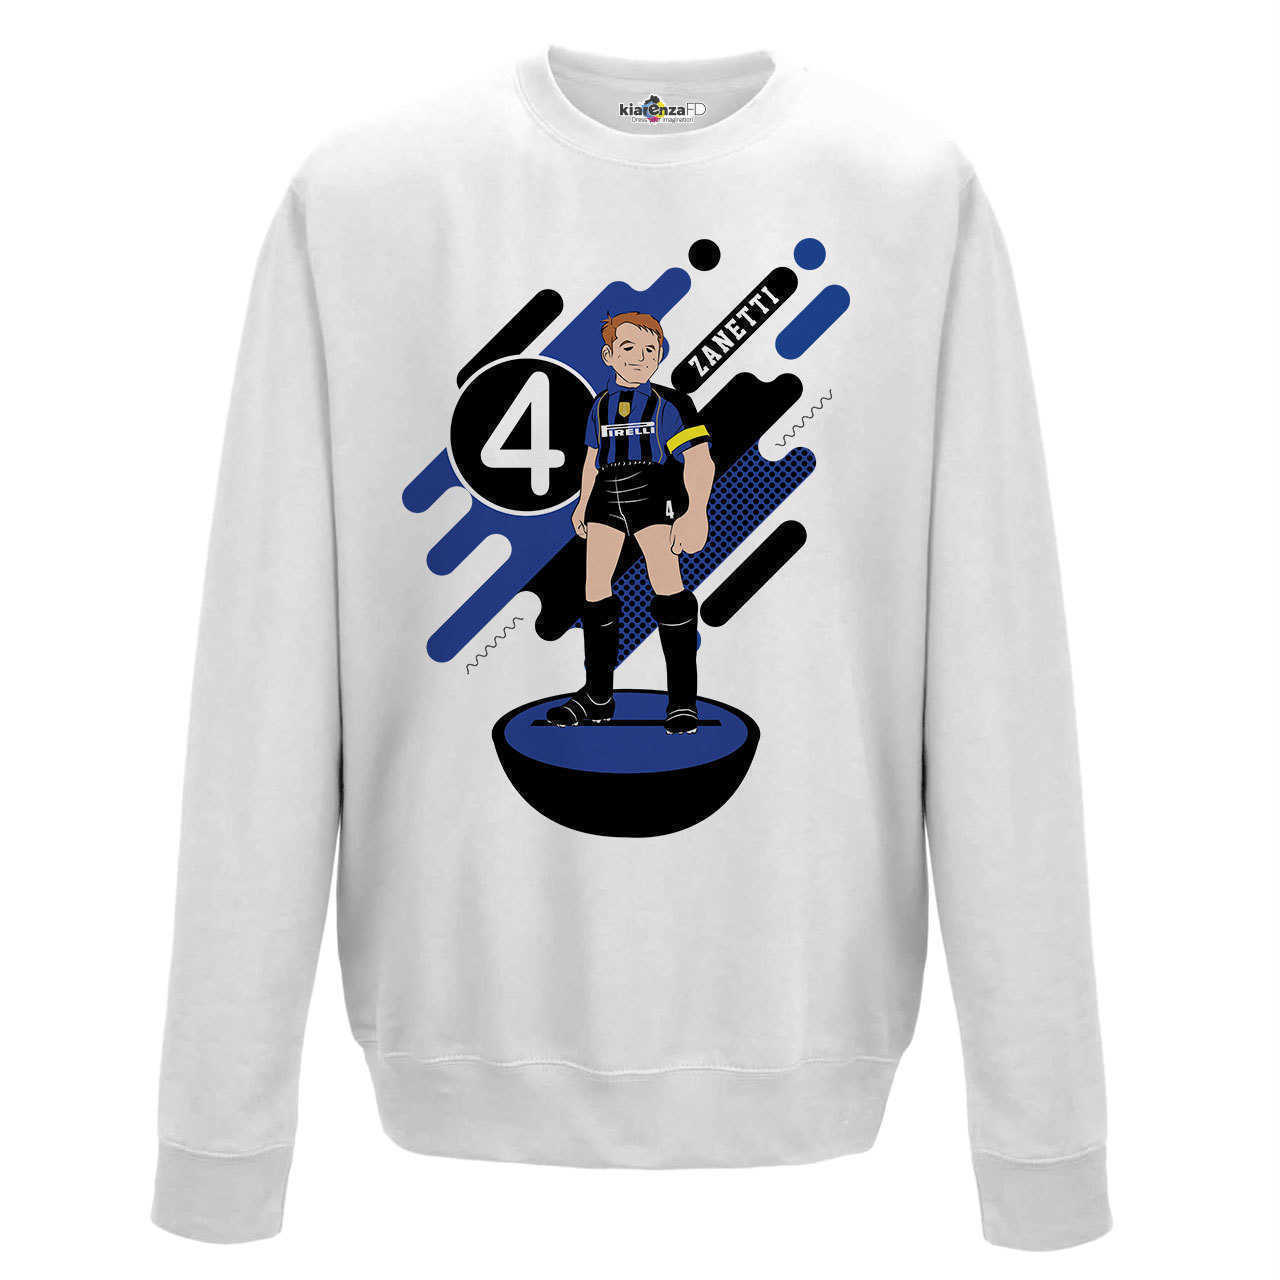 Crewneck Sweatshirt <font><b>Soccer</b></font> Manga Zanetti <font><b>Inter</b></font> <font><b>Milan</b></font> Legend Spoof Subbuteo Holly and Benji S image